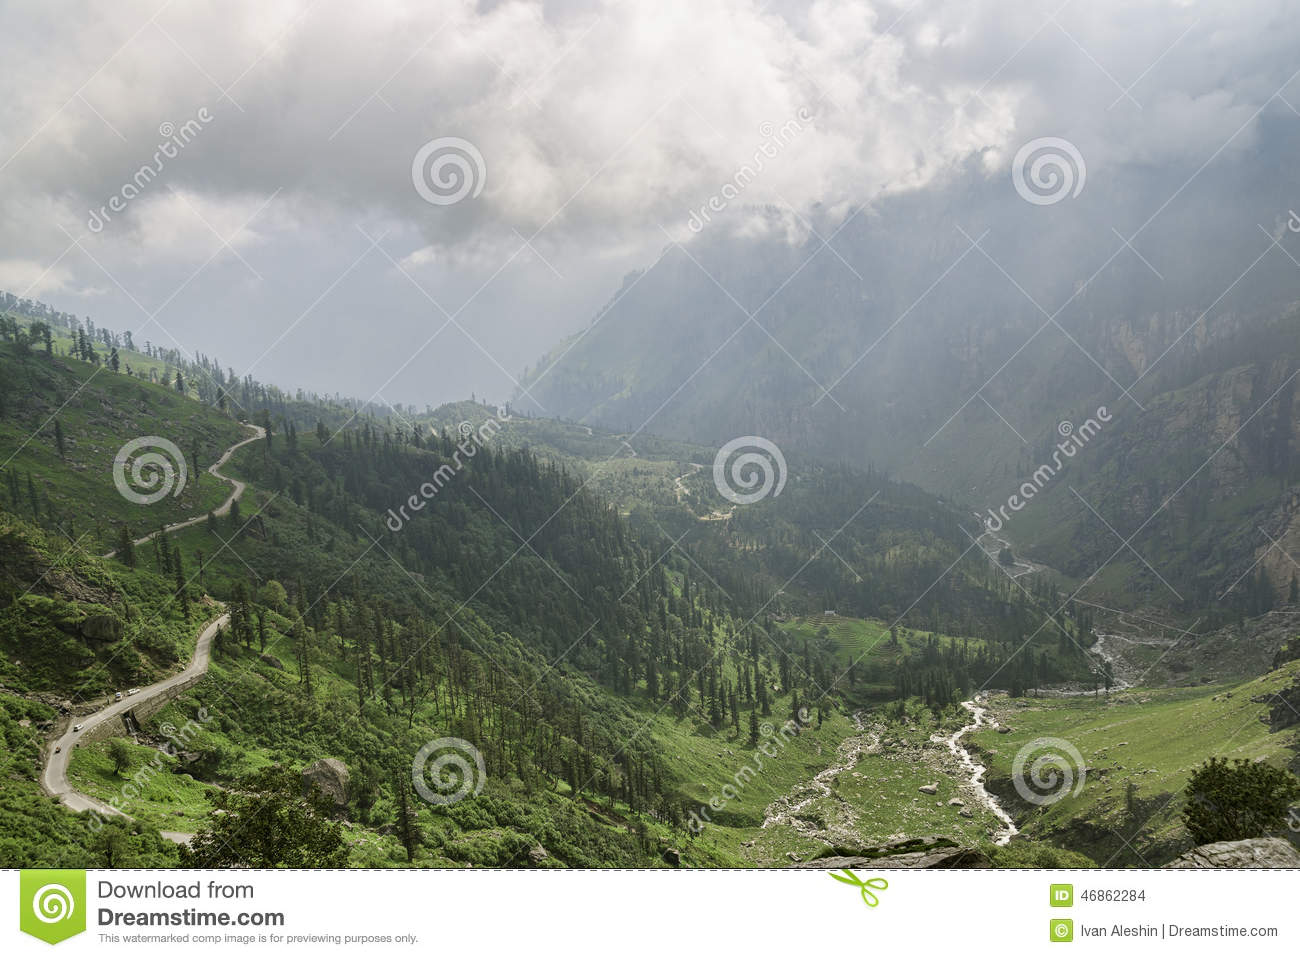 Mountain road among valley and river